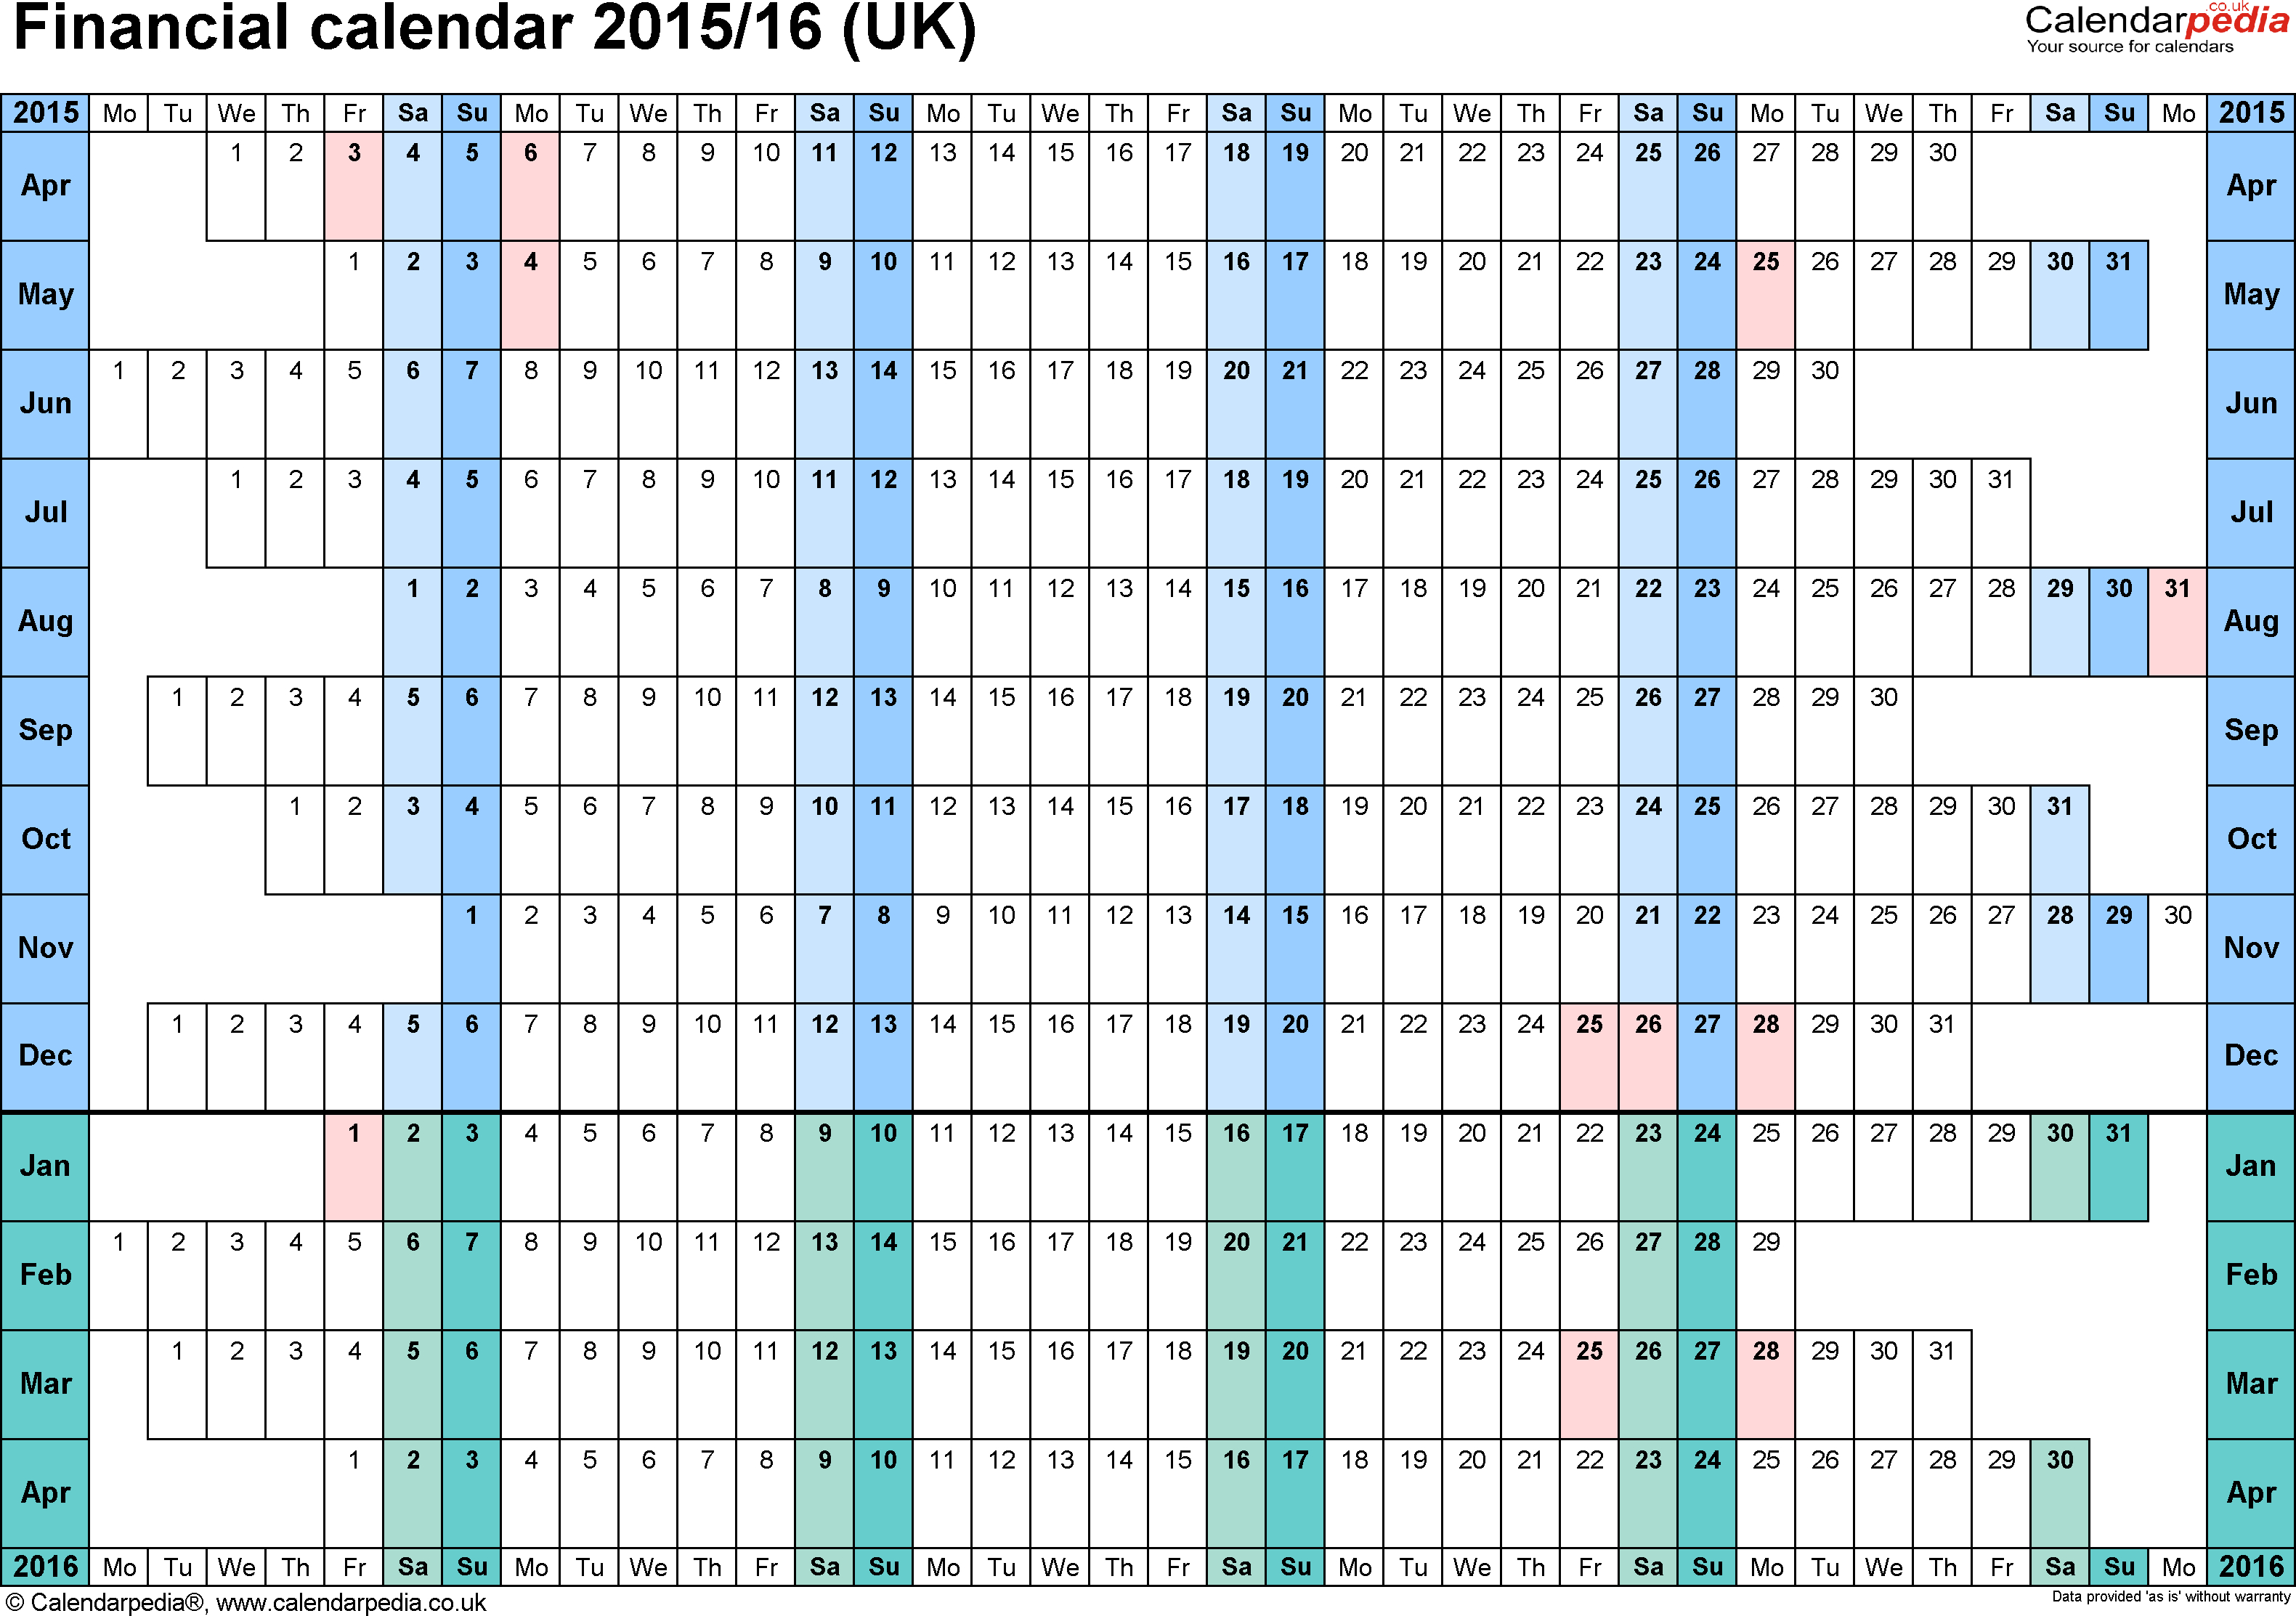 Financial Calendars 2015/16 (Uk) In Microsoft Excel Format